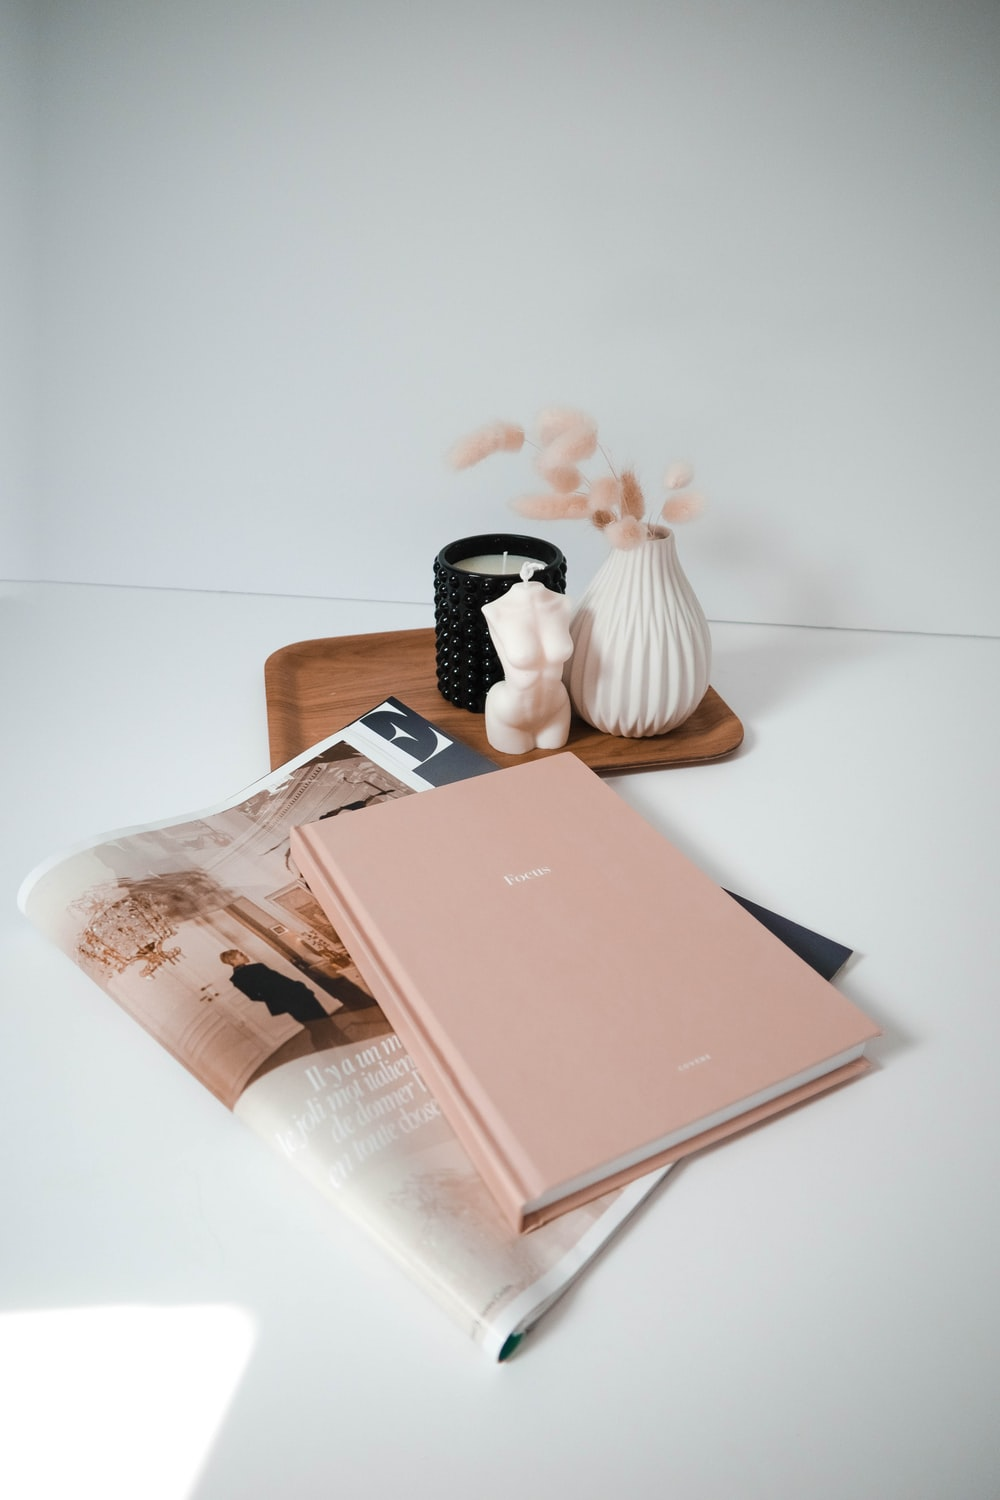 pink book on white table